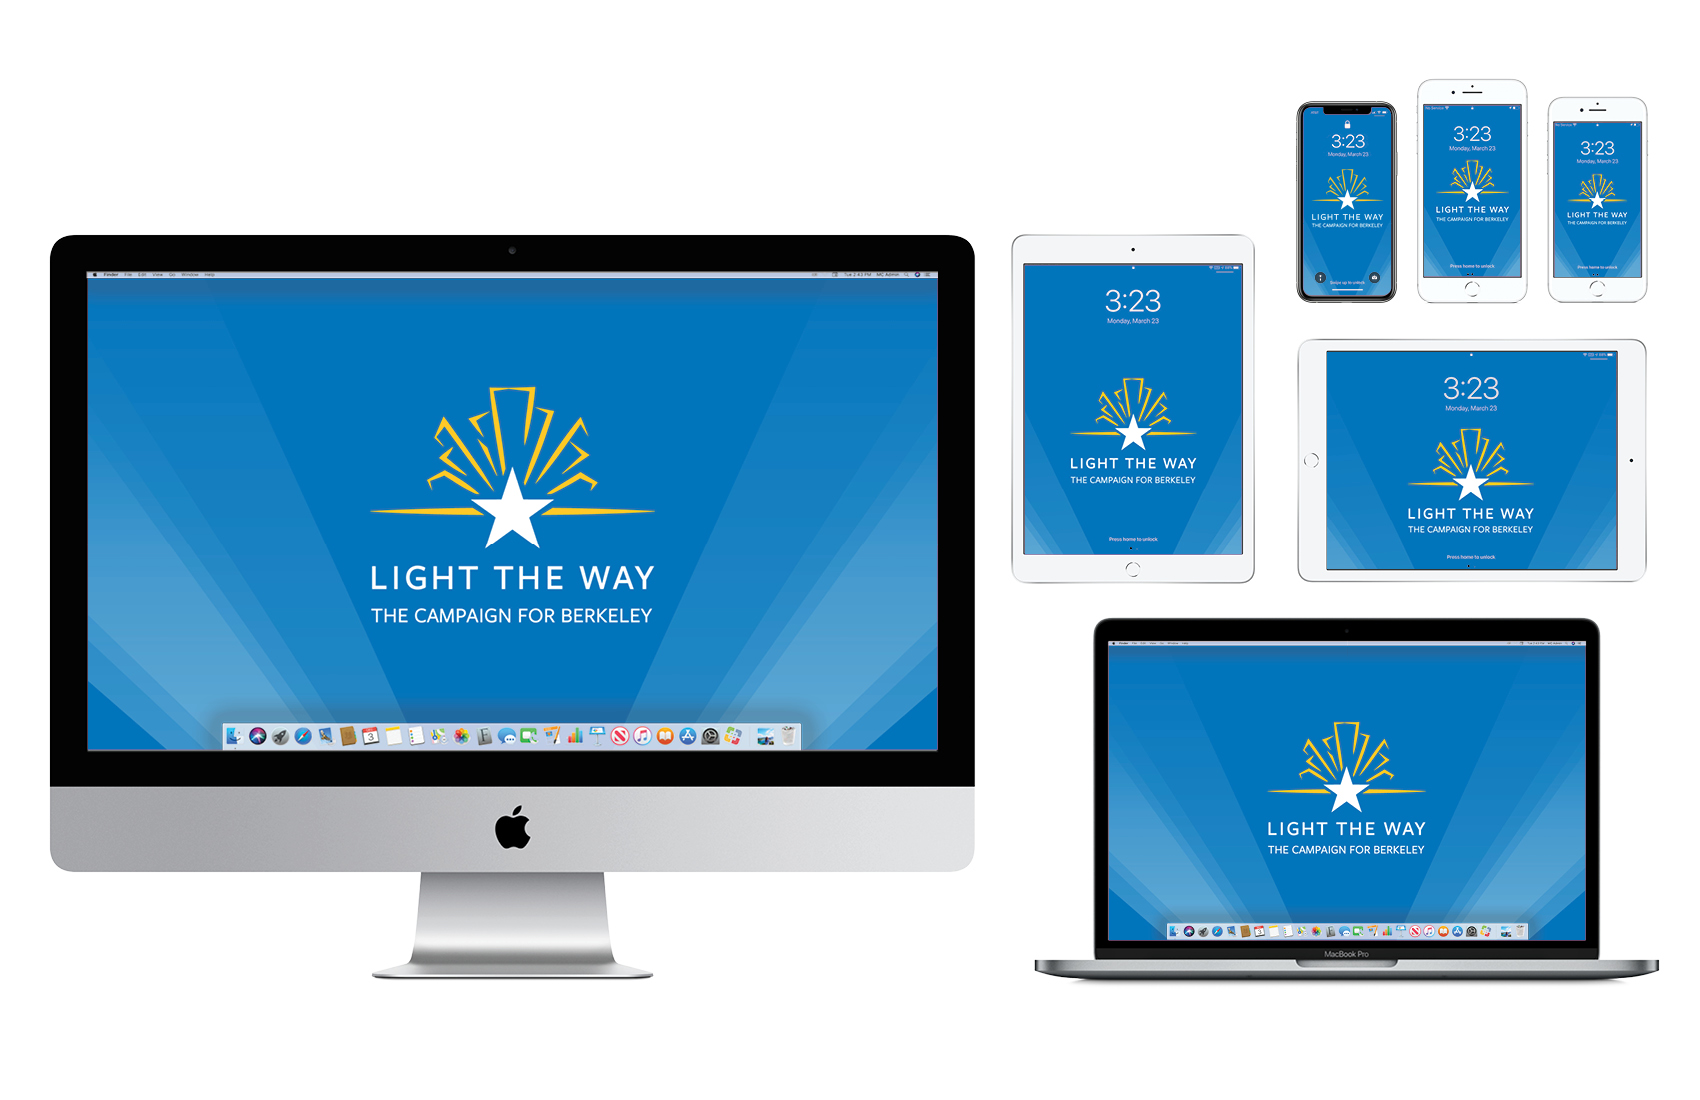 Wallpaper with Light the Way campaign logo on blue background